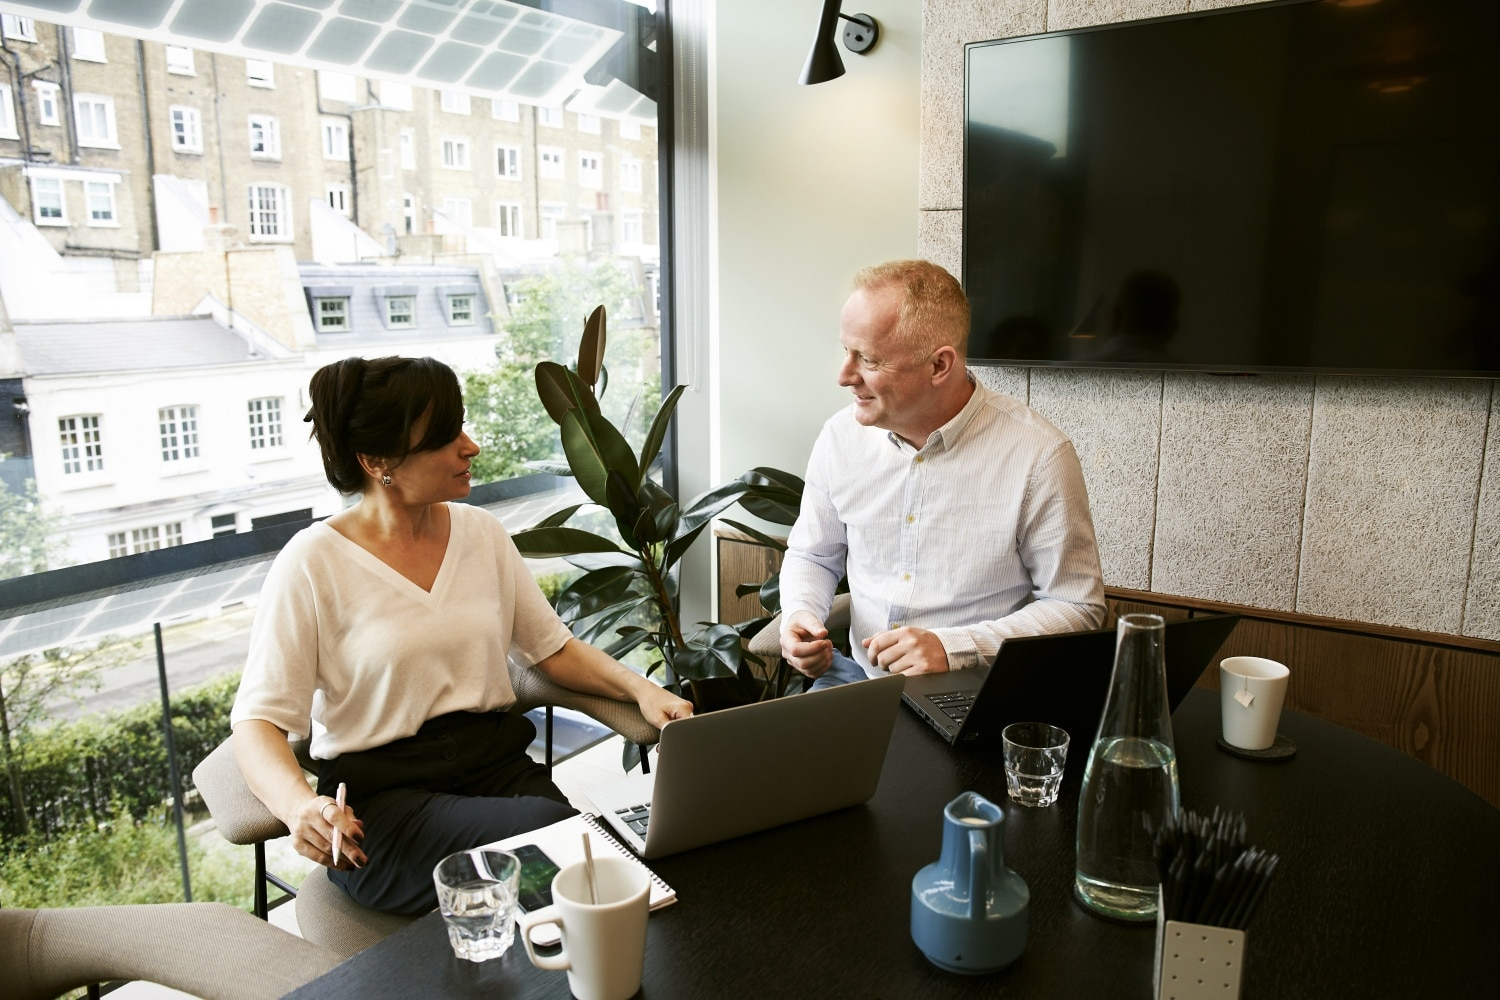 How and Why to Define Roles in Family Business